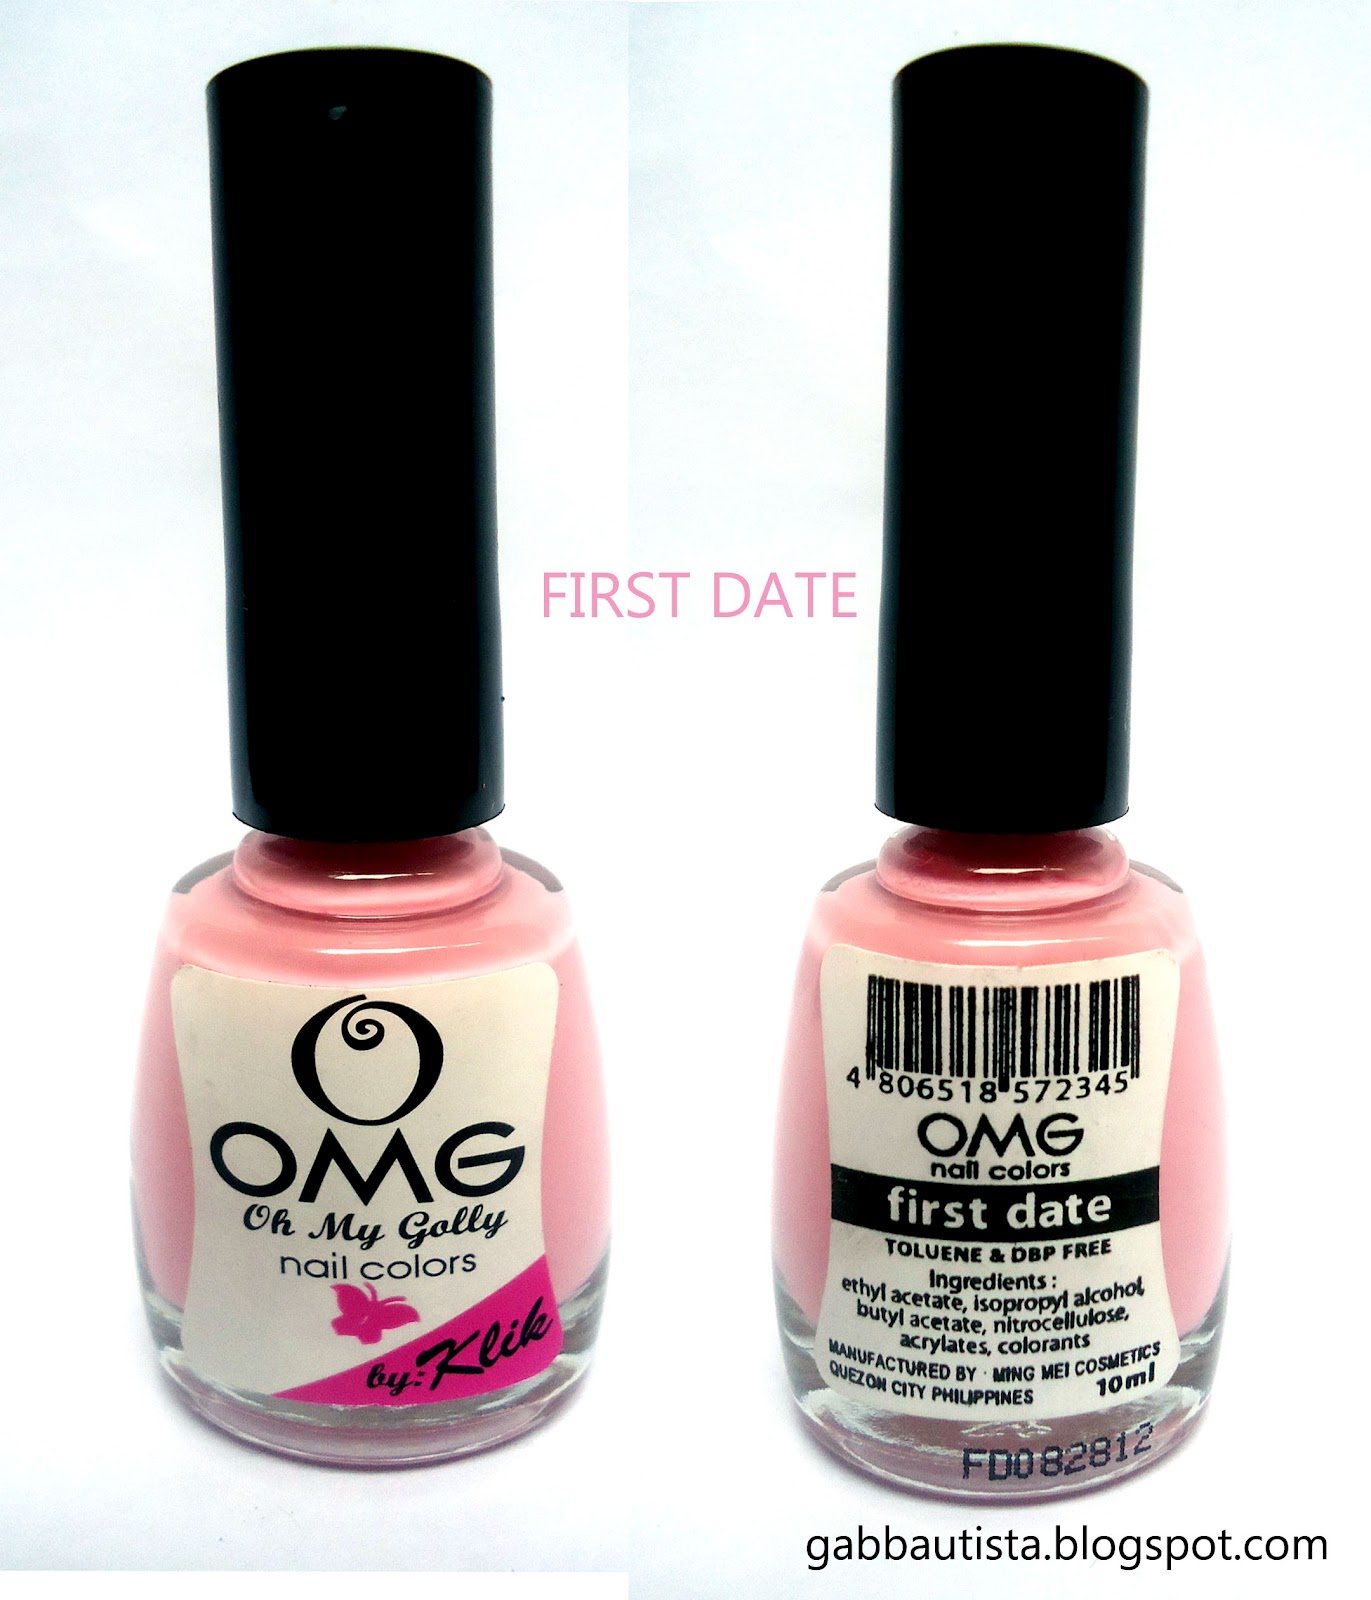 CONFESSIONS OF GAB BAUTISTA: OMG(Oh My Golly) Nail Colors ...